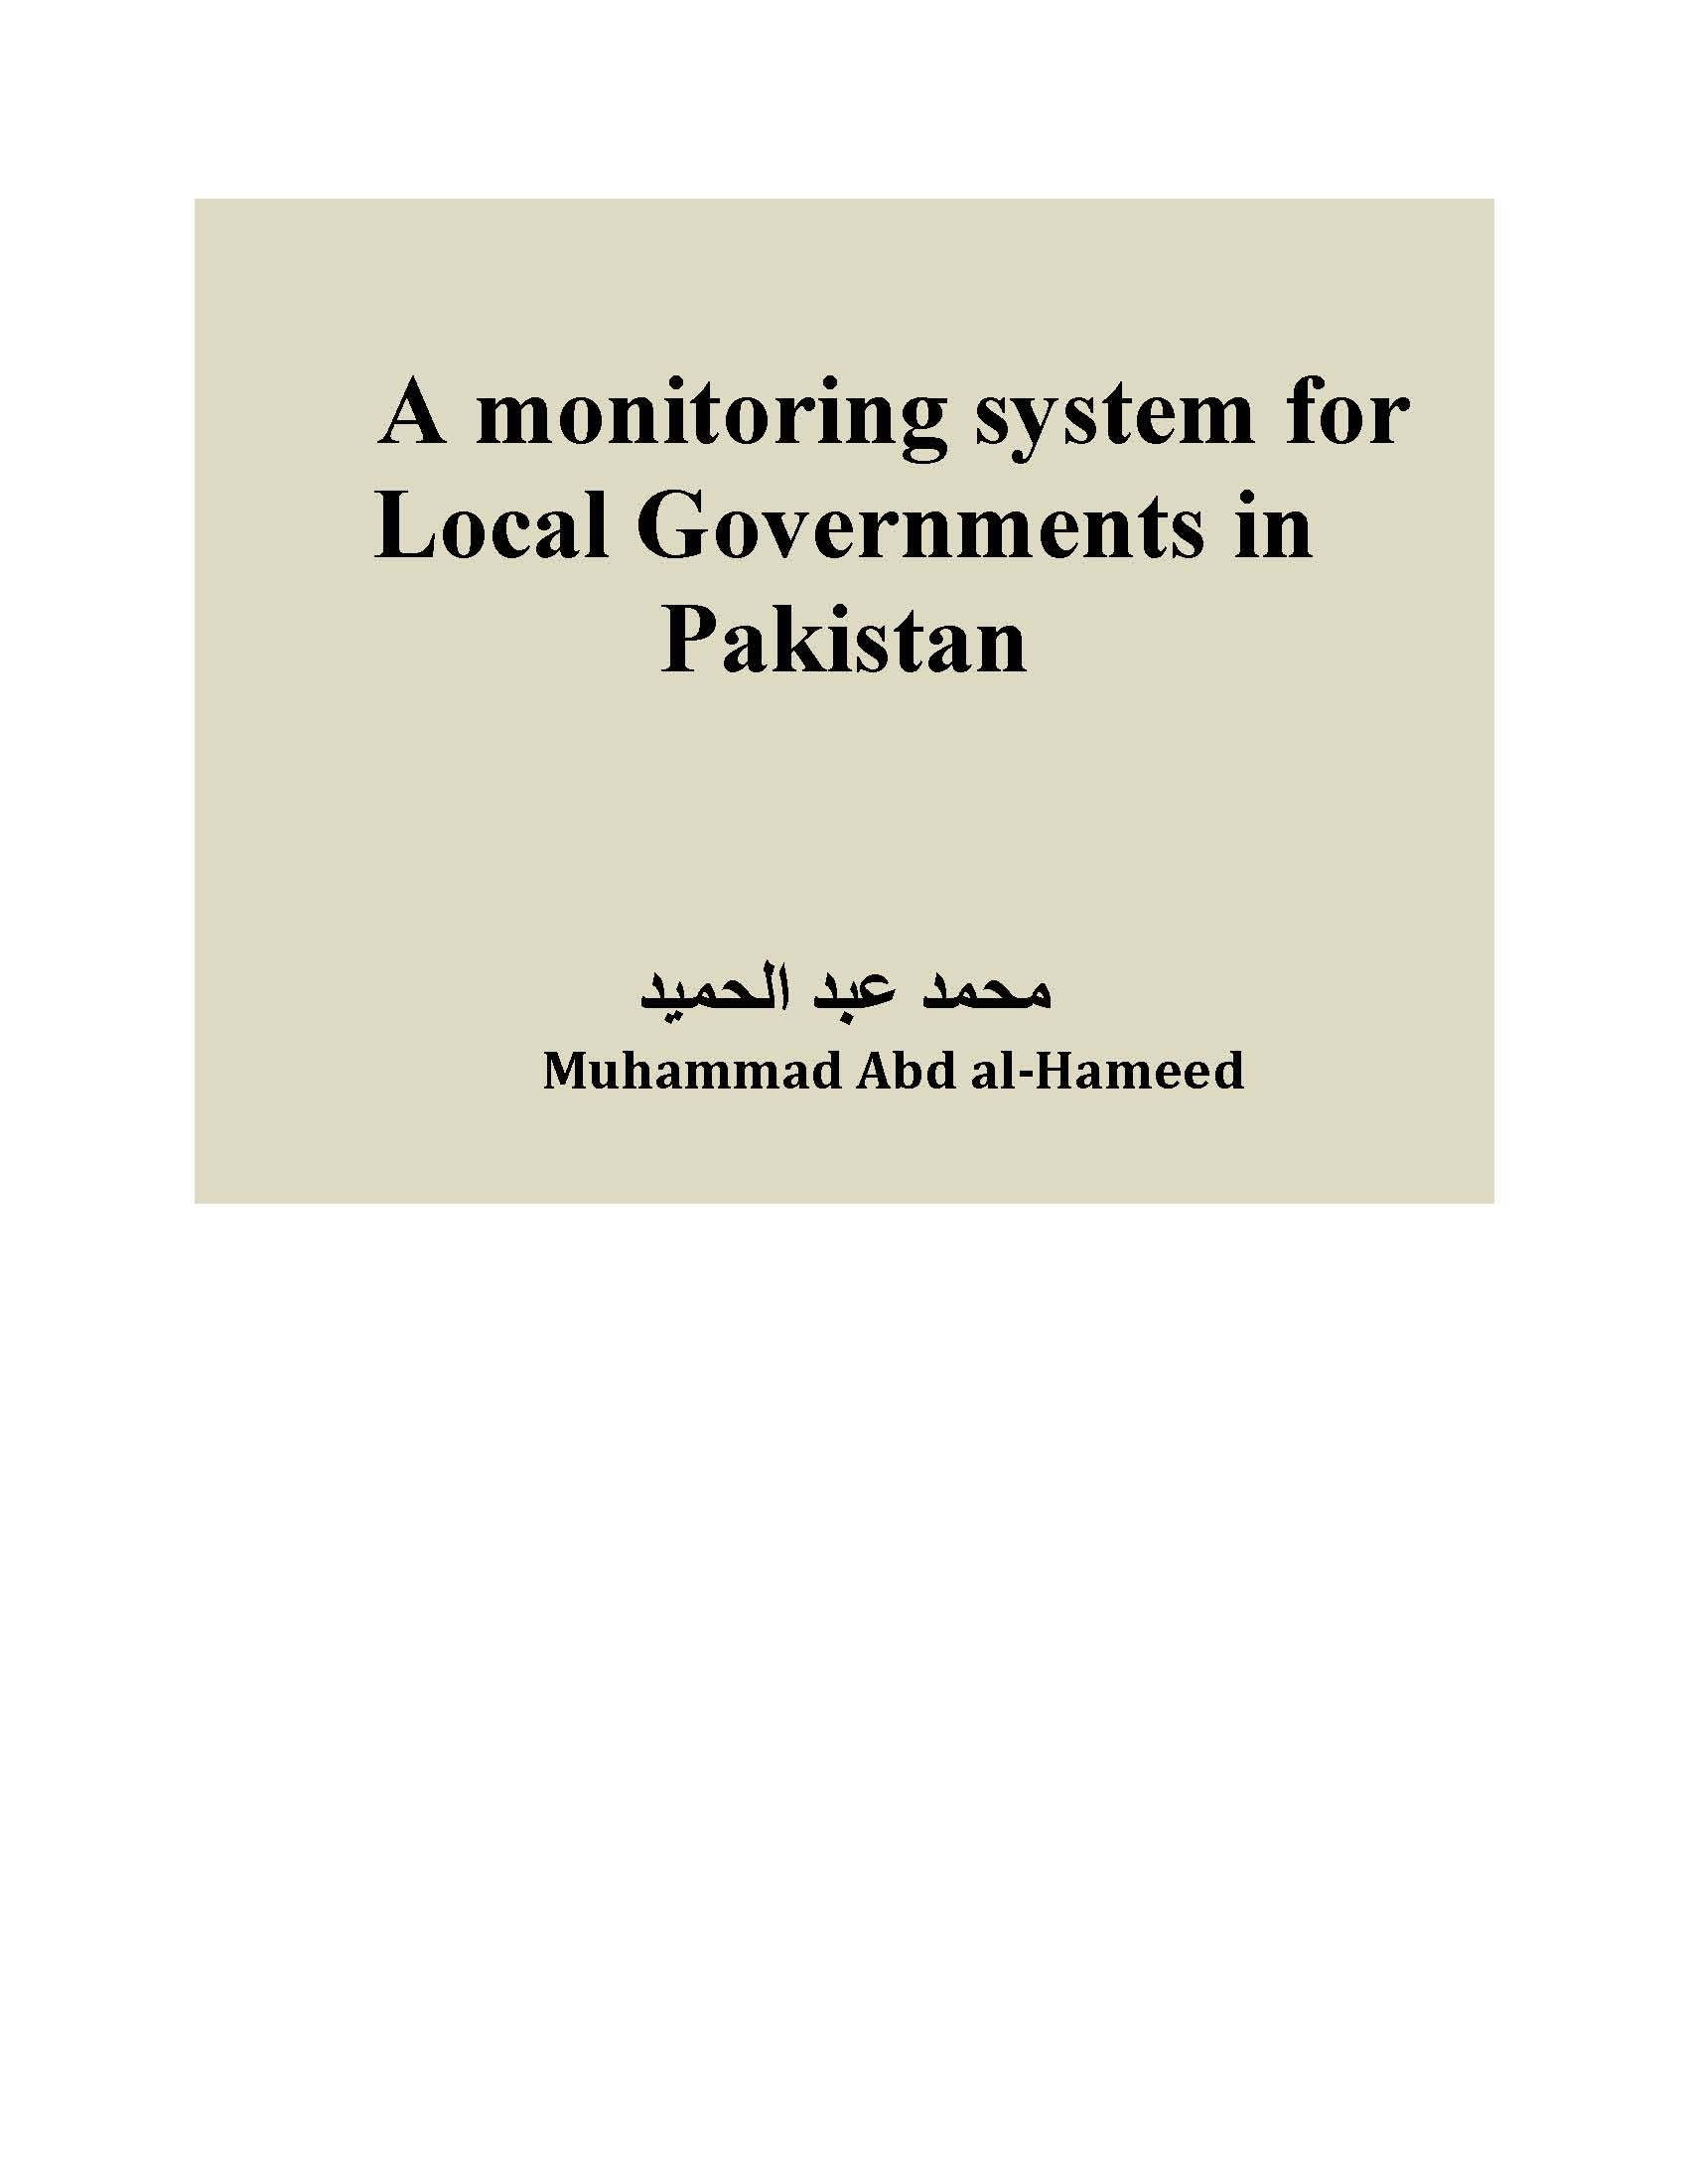 A monitoring system for Local Governments in Pakistan